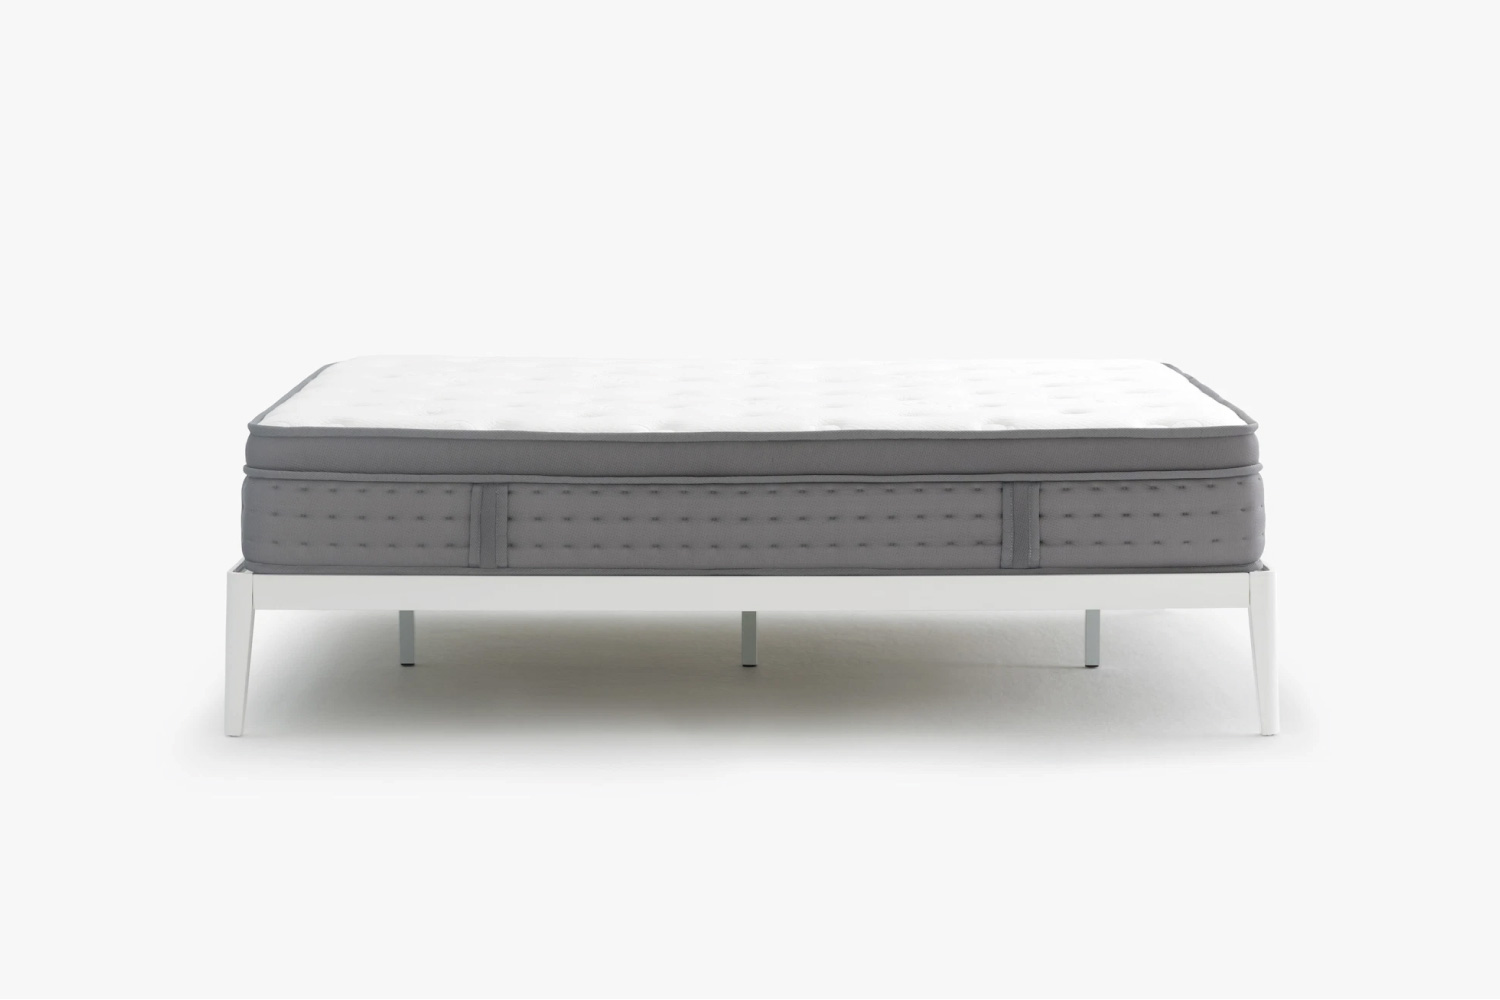 Noa mattress on white bedframe